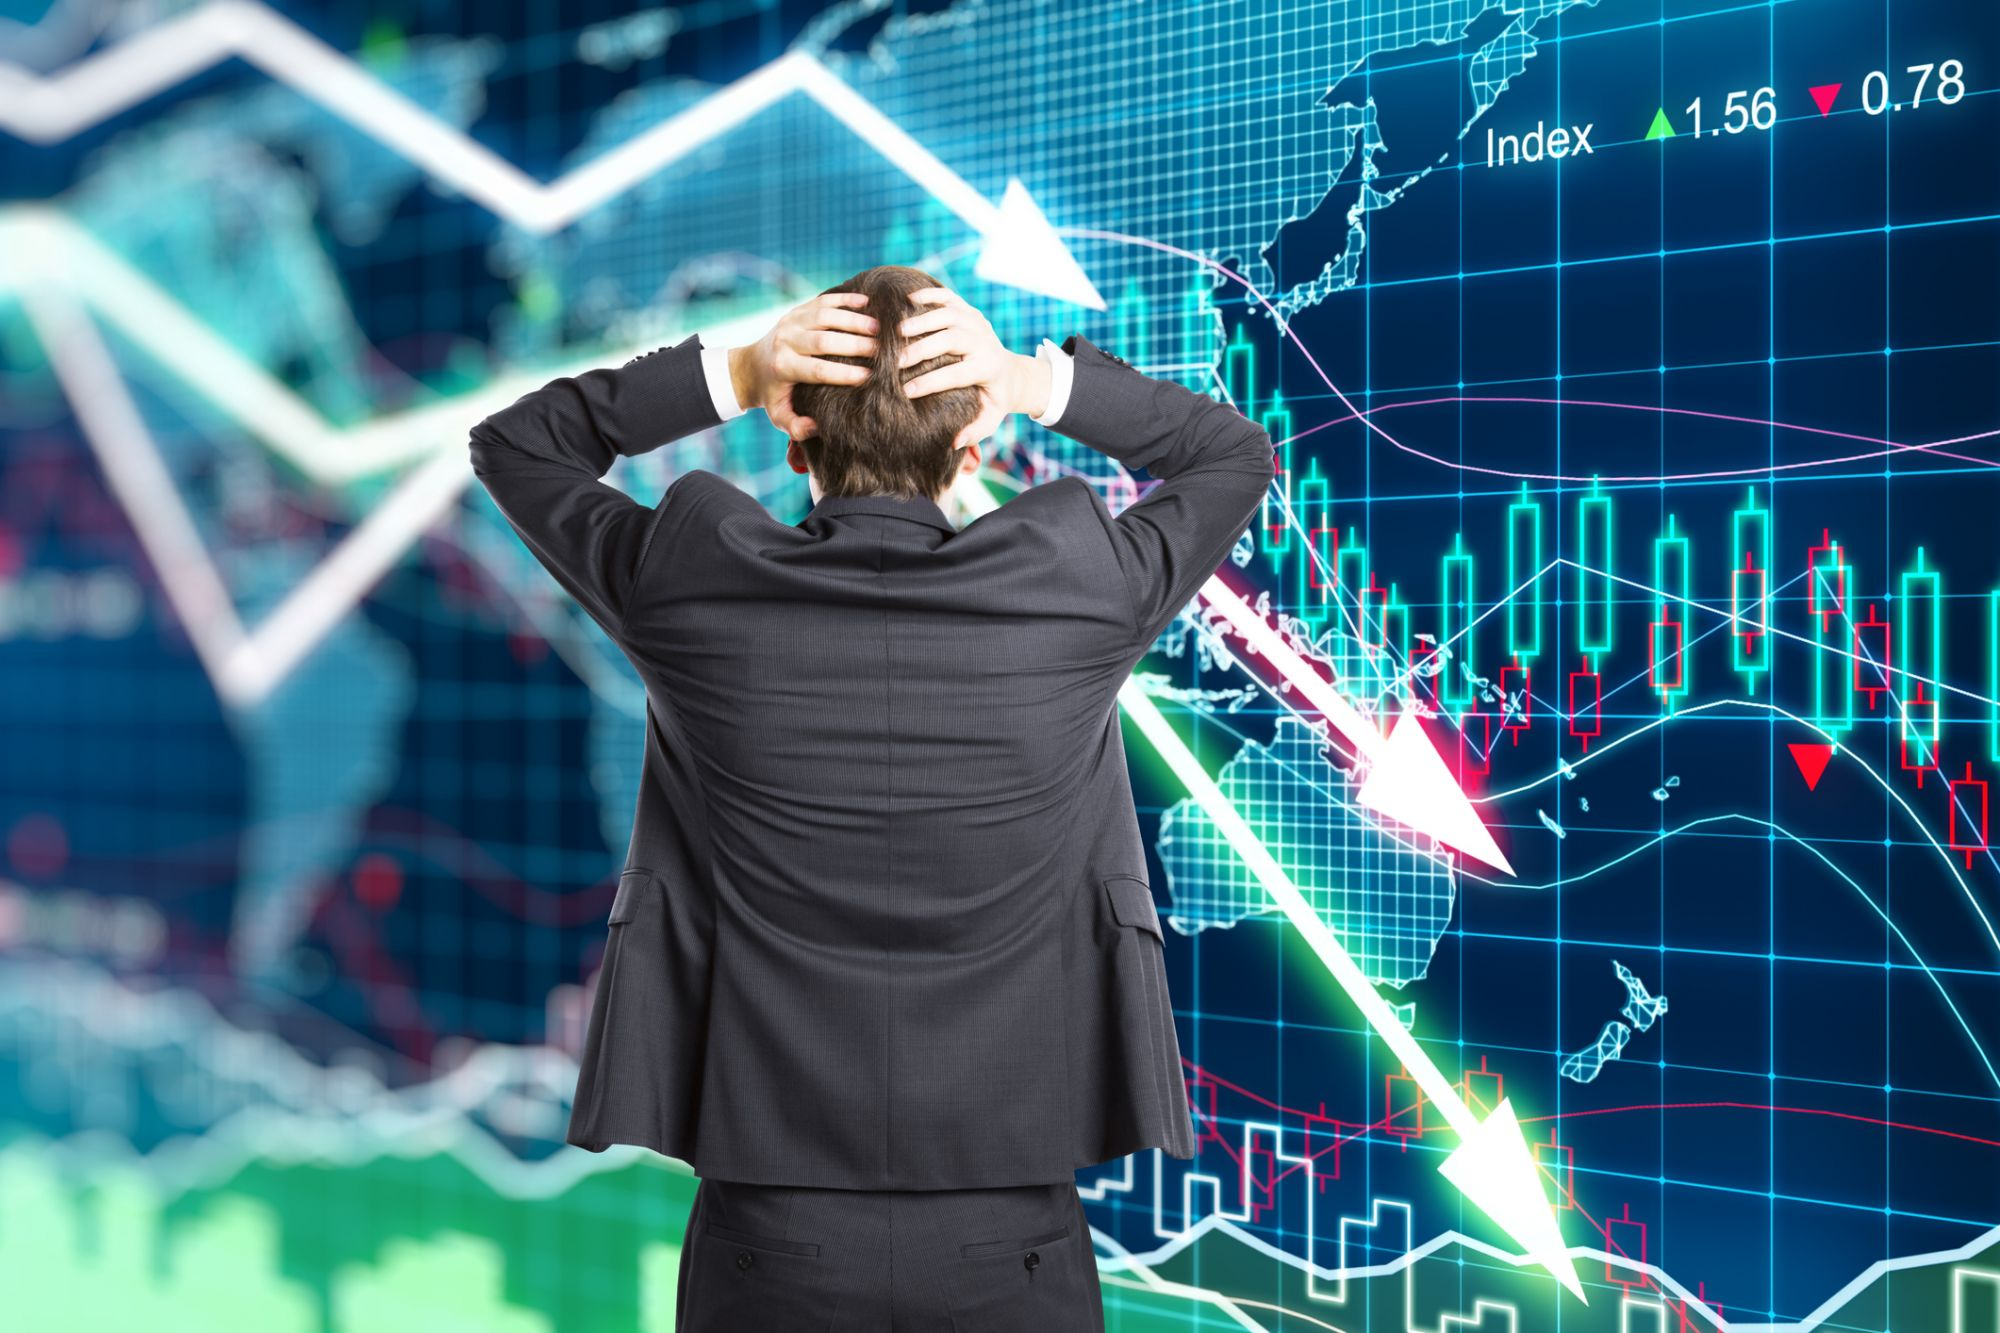 entrepreneur.com - Andrew Osterland - Confidence in the Economy Is Plunging, and so Are Stock Prices